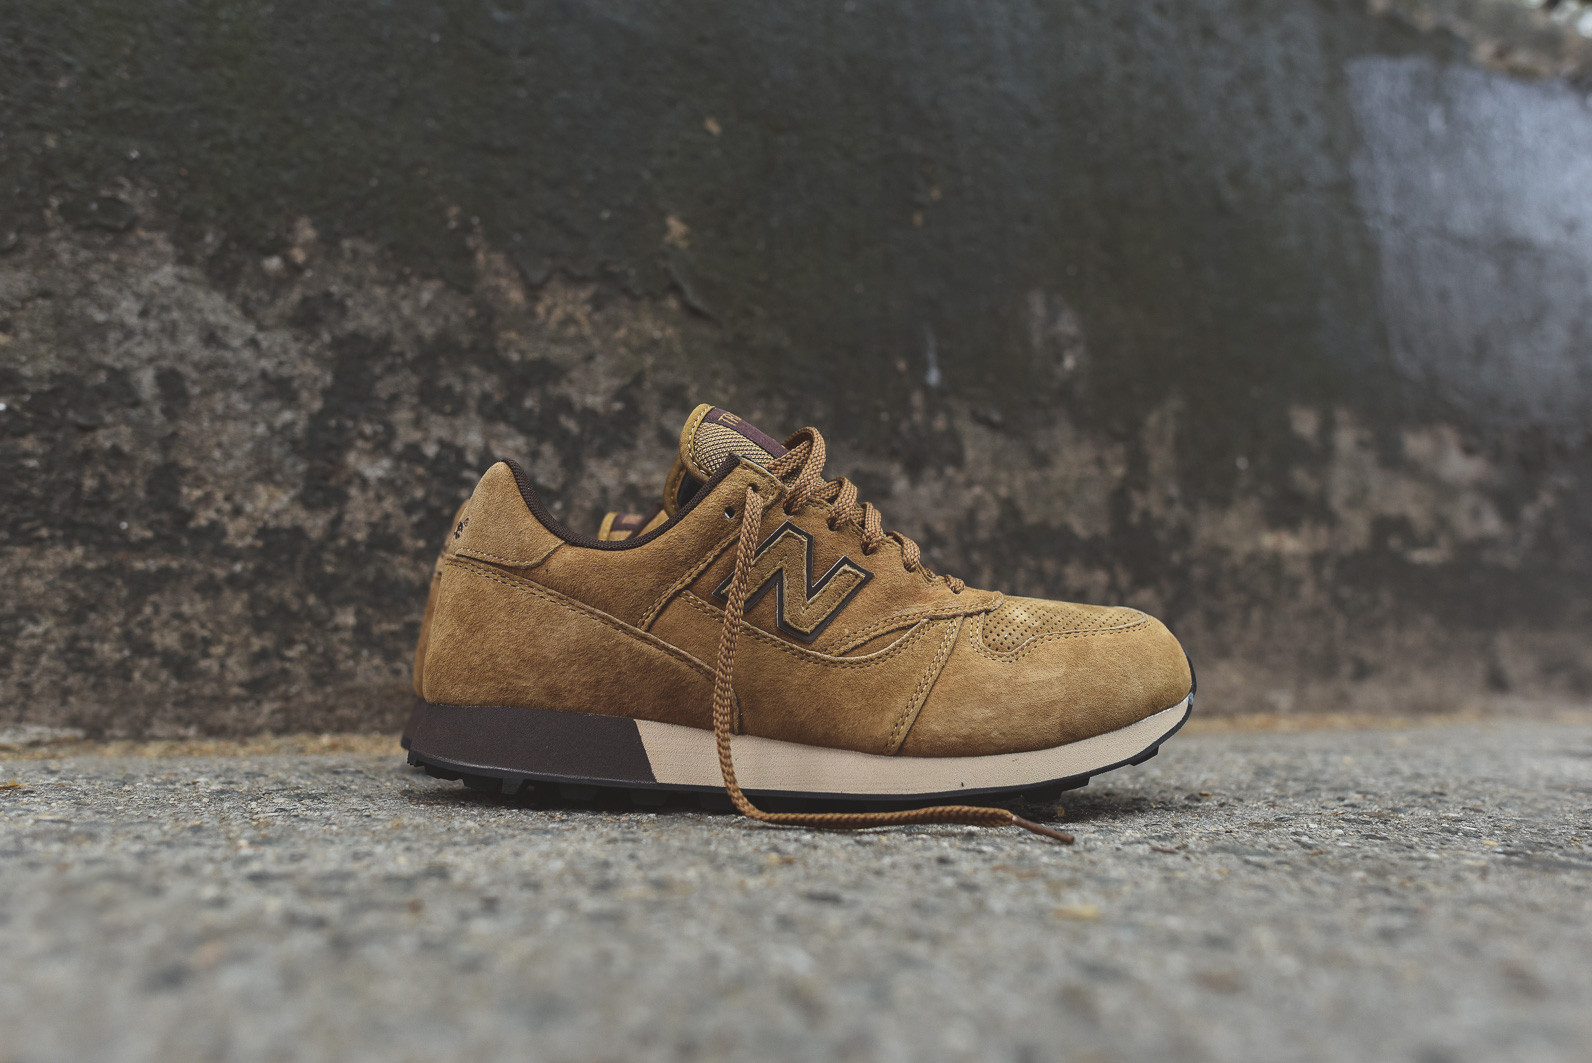 NB-Trailbuster-FW15-5